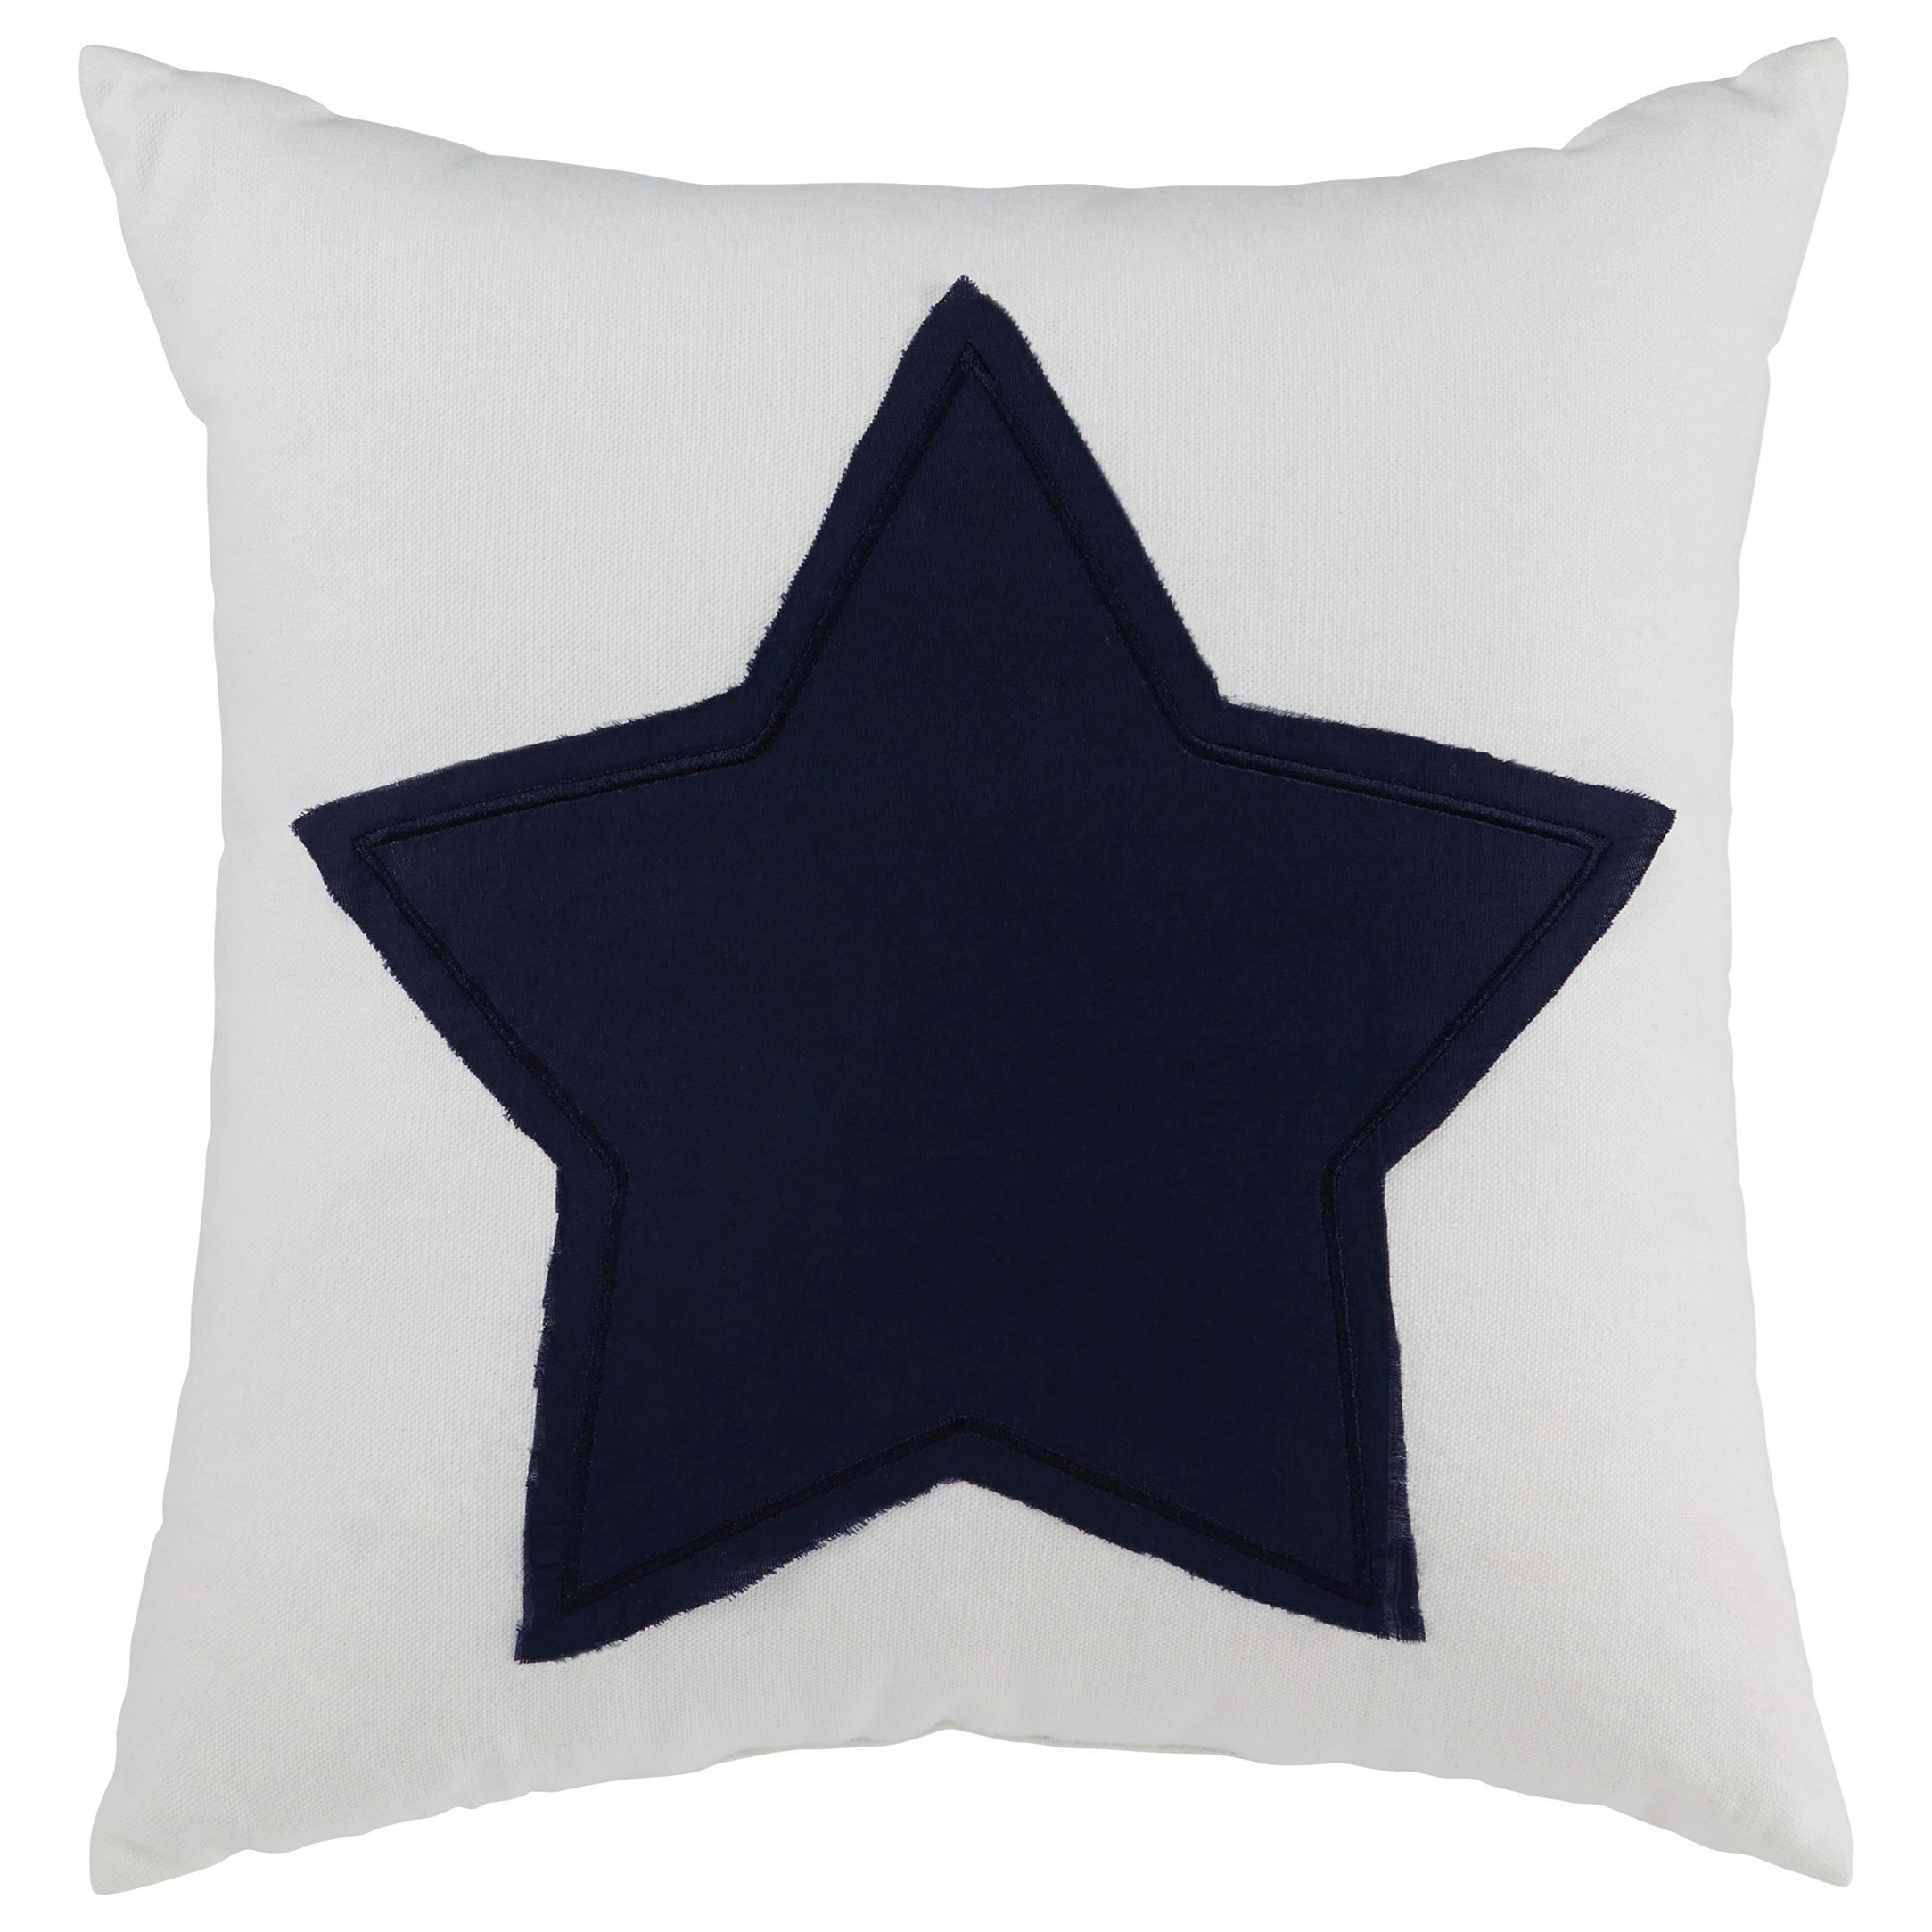 Signature Design by Ashley Pillows Gilead - White/Navy Pillow - Item Number: A1000718P